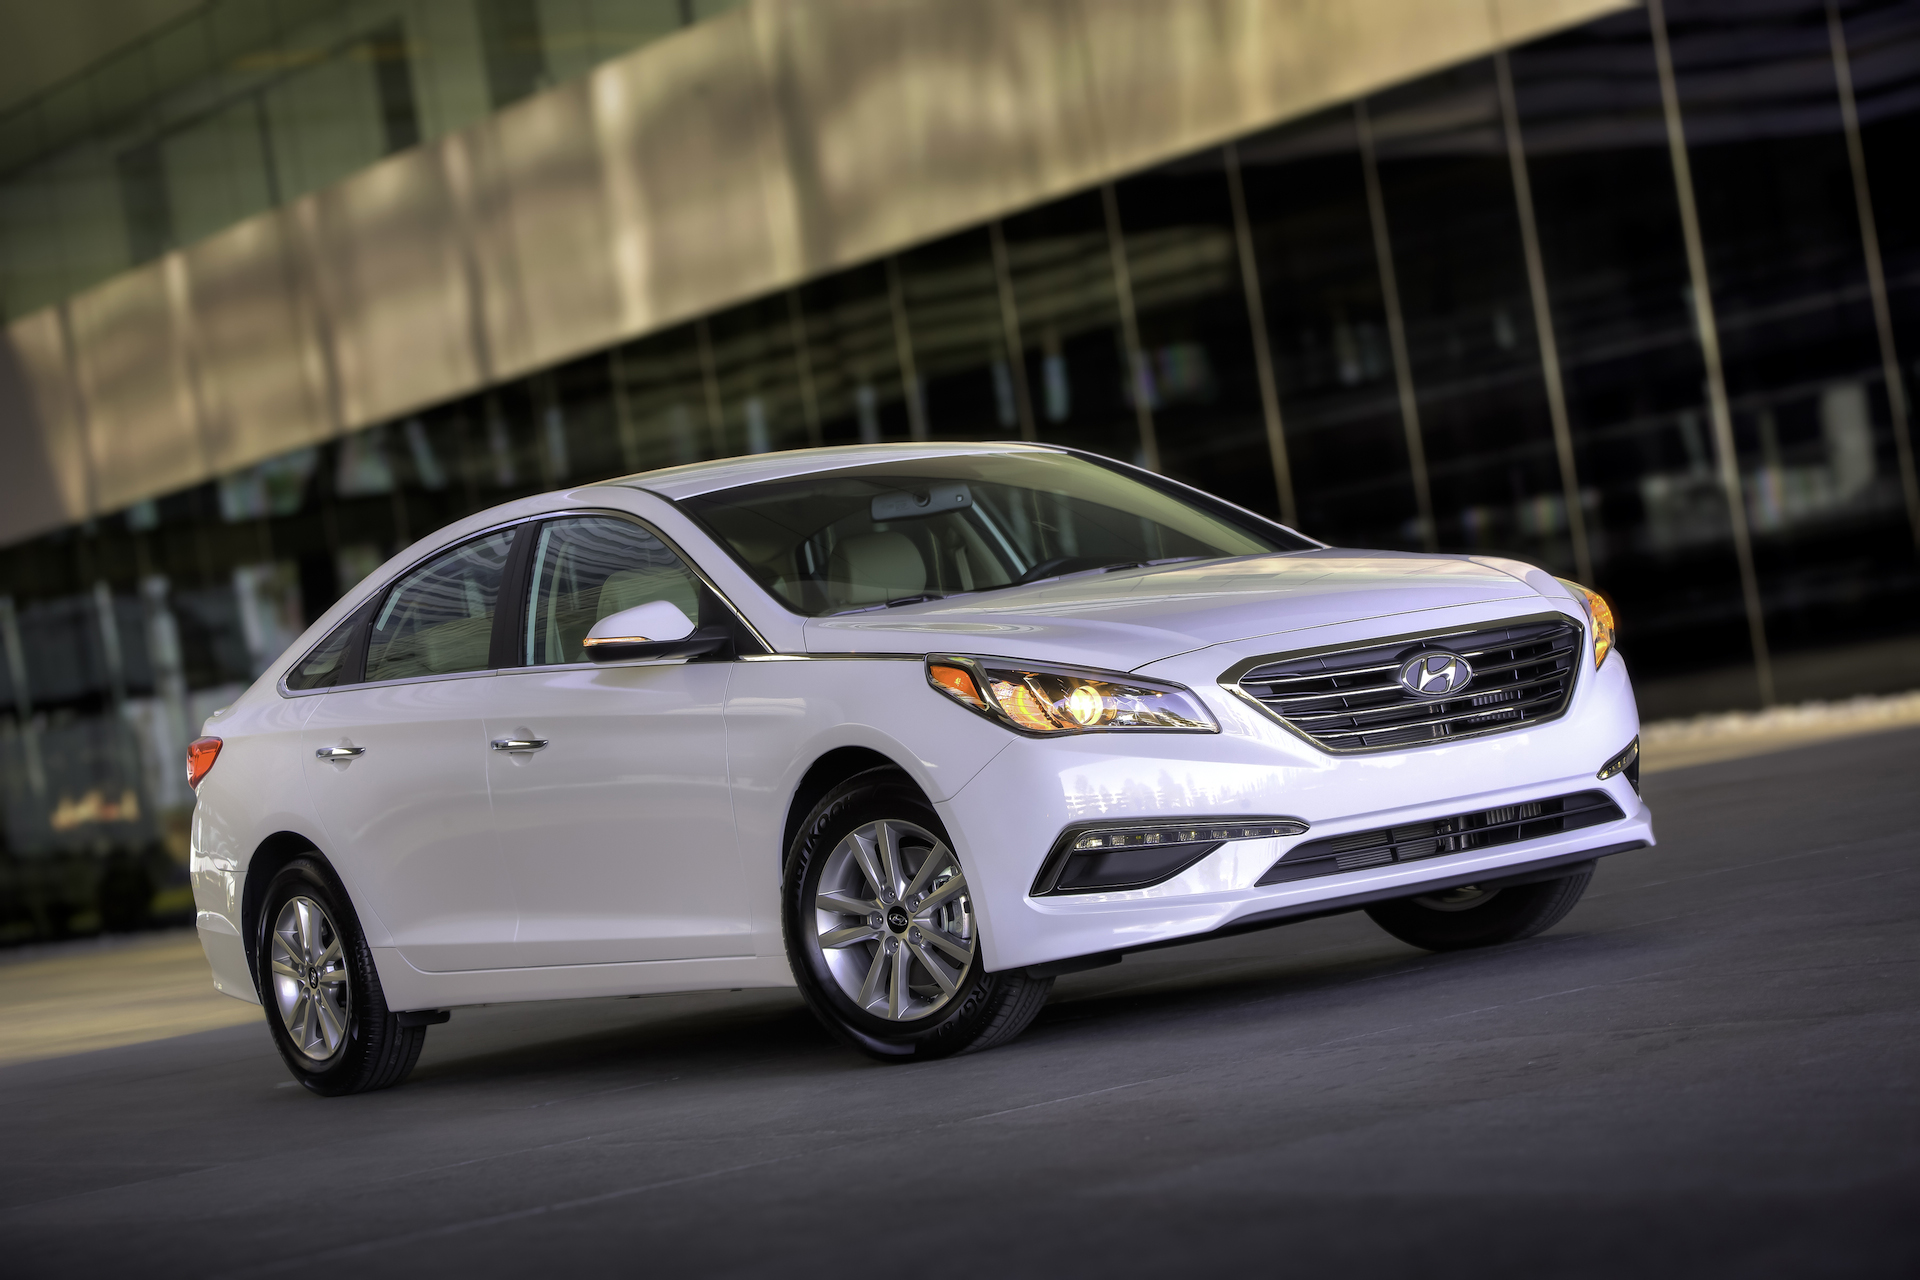 Hyundai's Updated Hybrid Six-Speed Transmission: For Plug-In Hybrids Too?